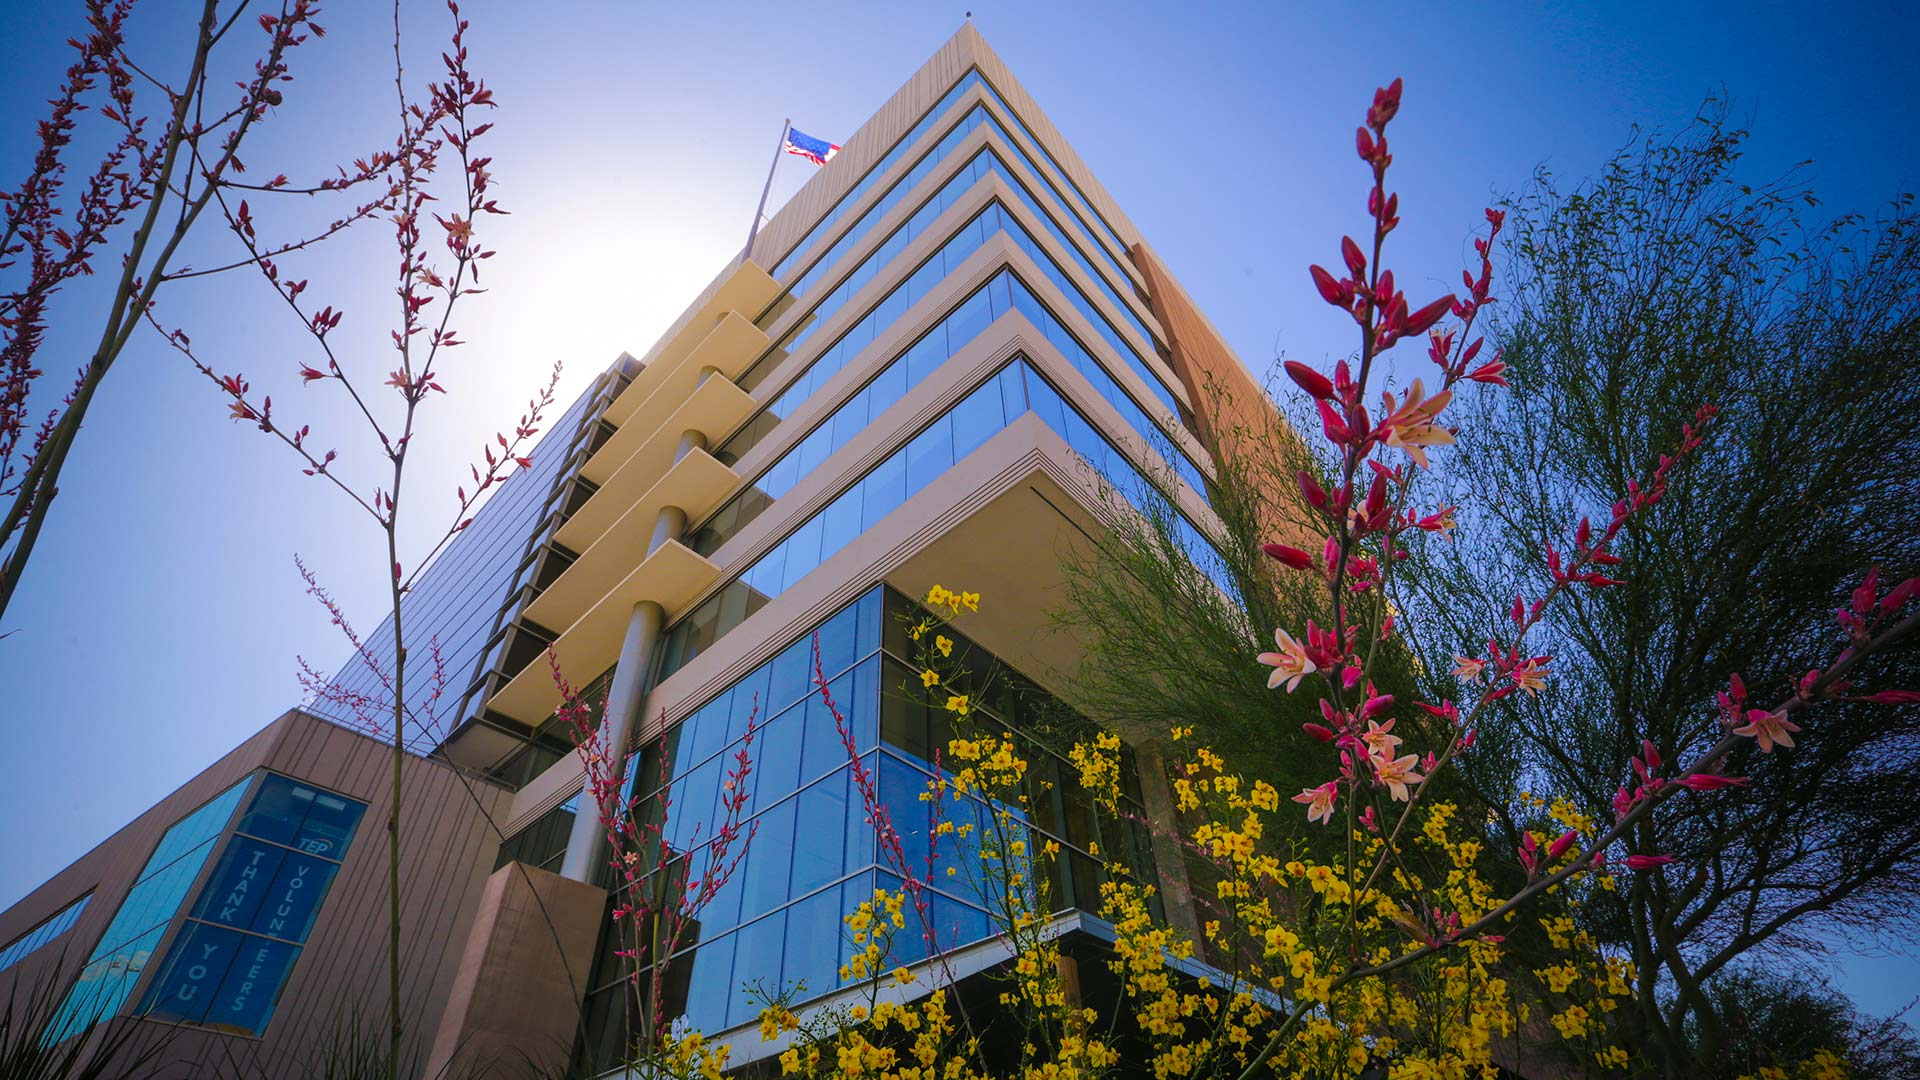 The TEP Building in downtown Tucson